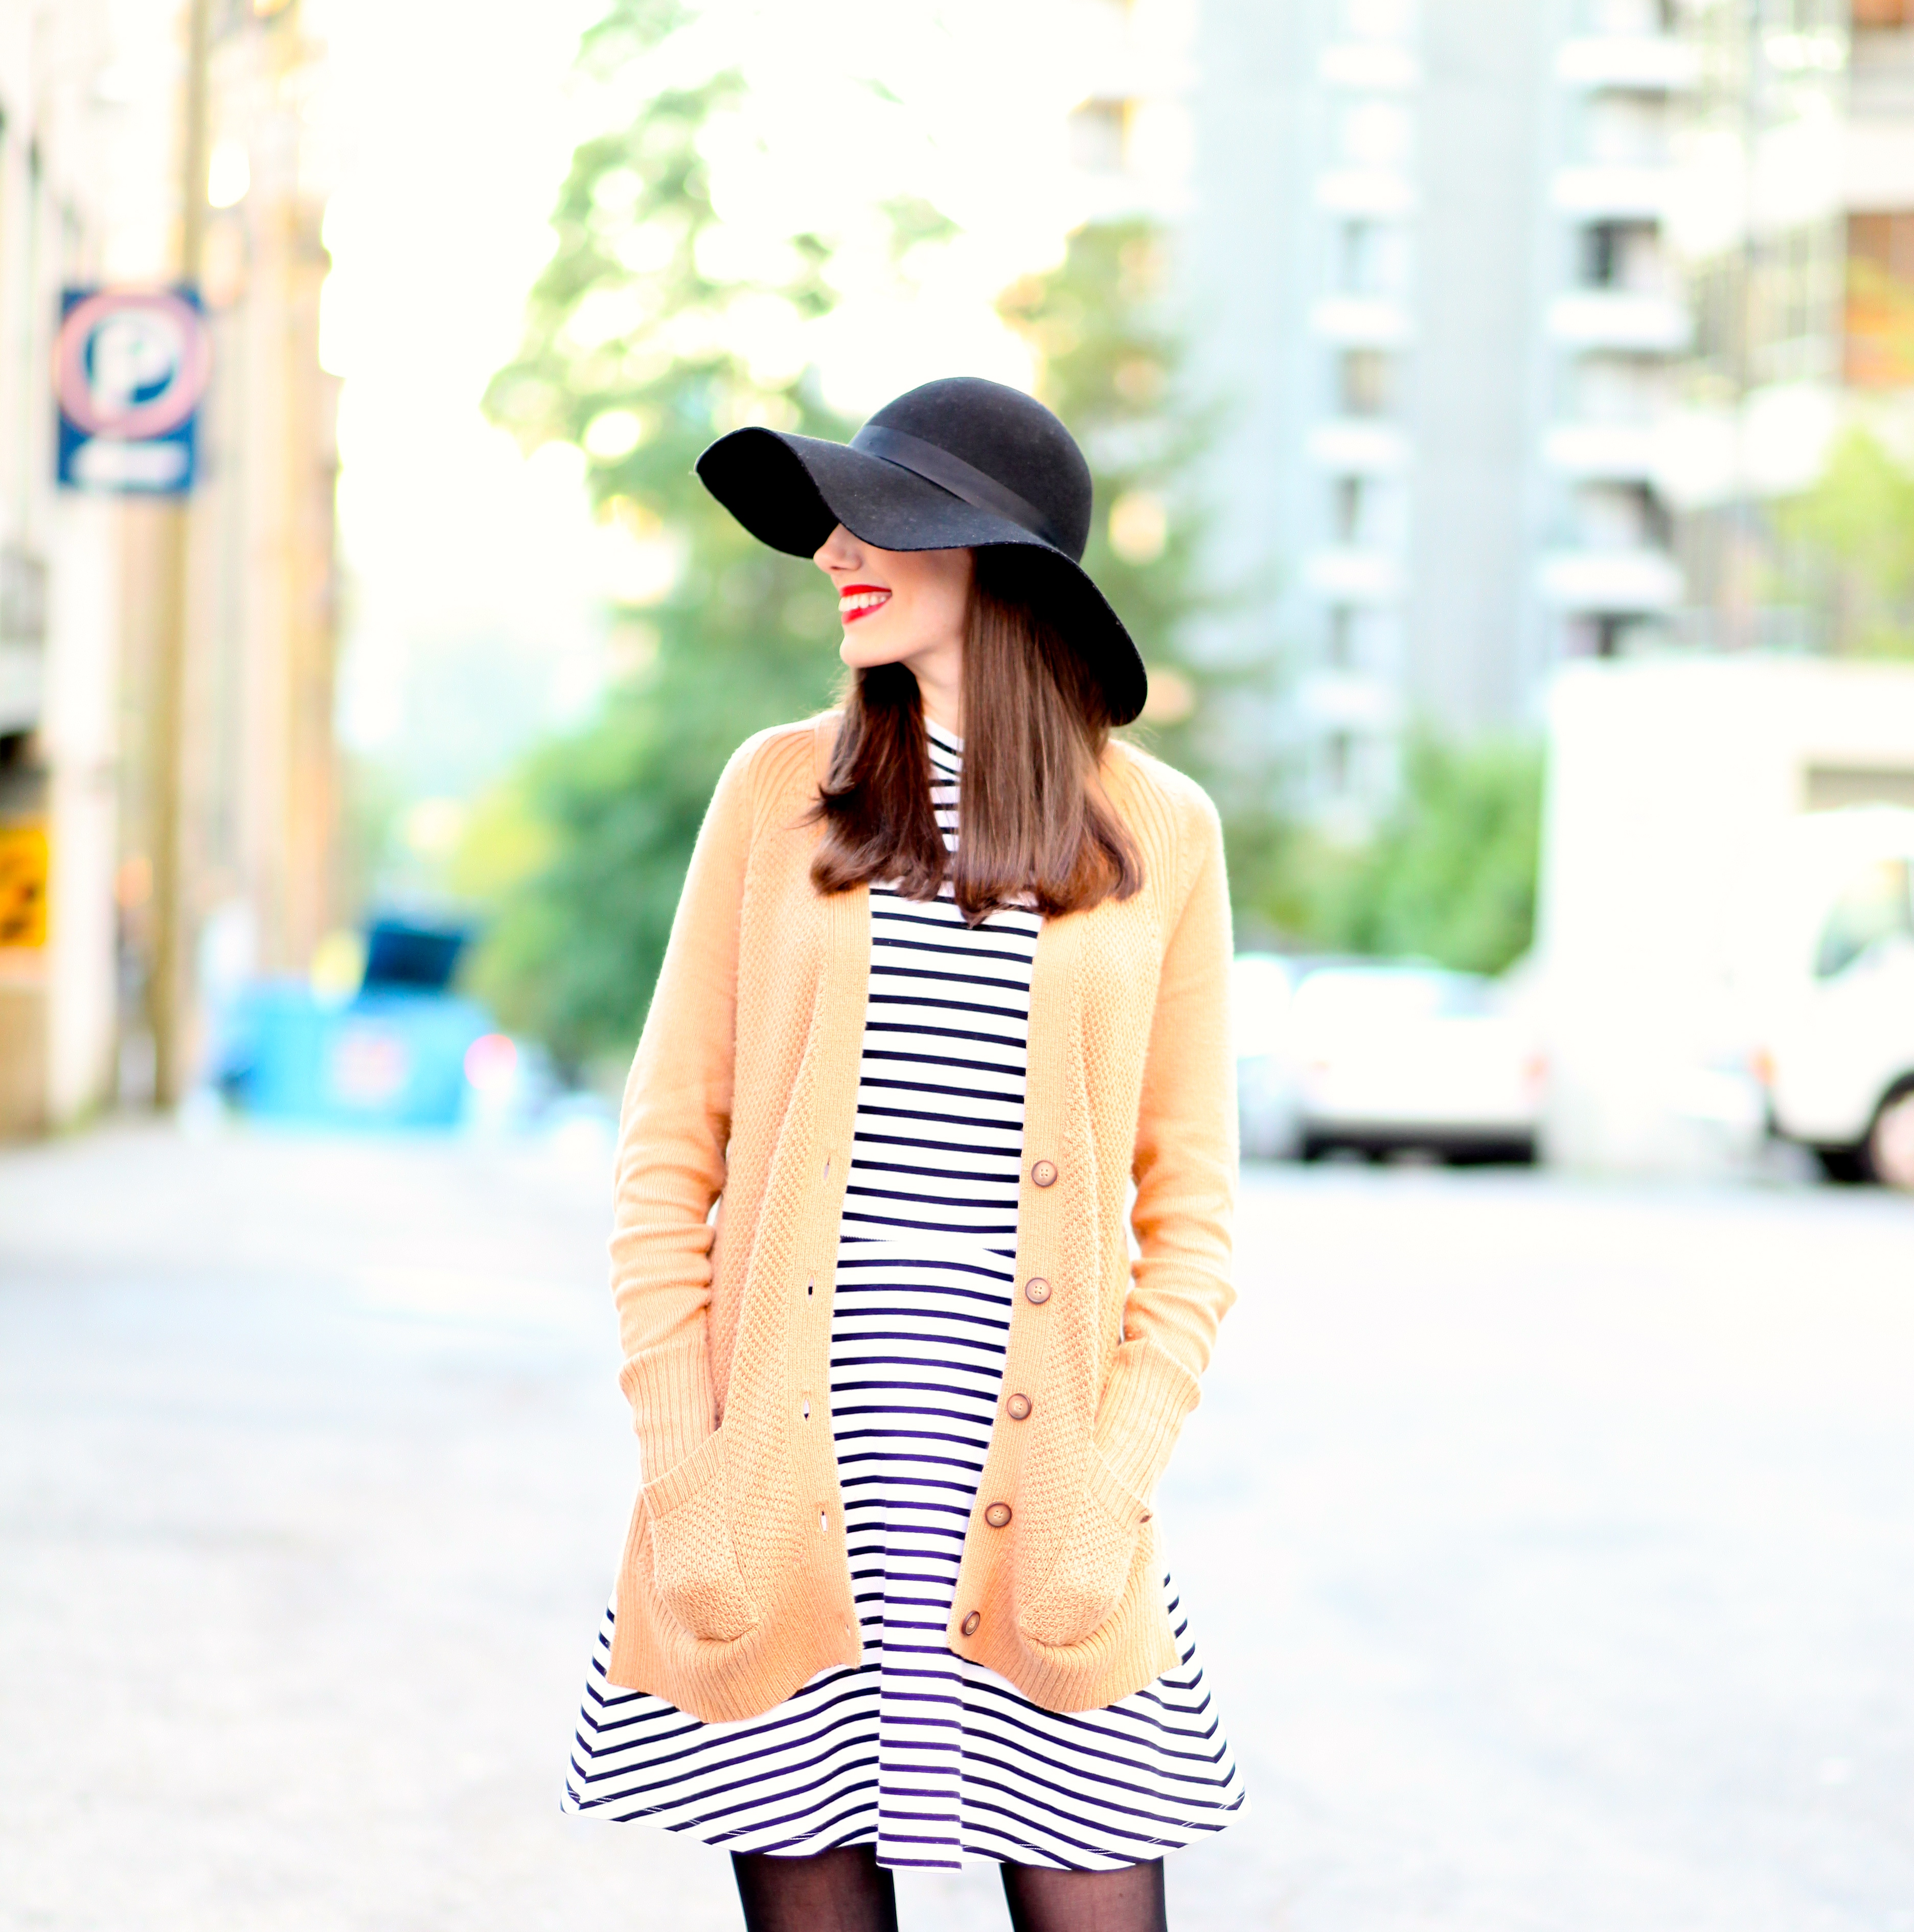 e1ed41f20b5 Cardigan — Old Navy Hat — Topshop Boots — Vince Camuto (similar here)  Tights — H M Lipstick — Majella by NARS